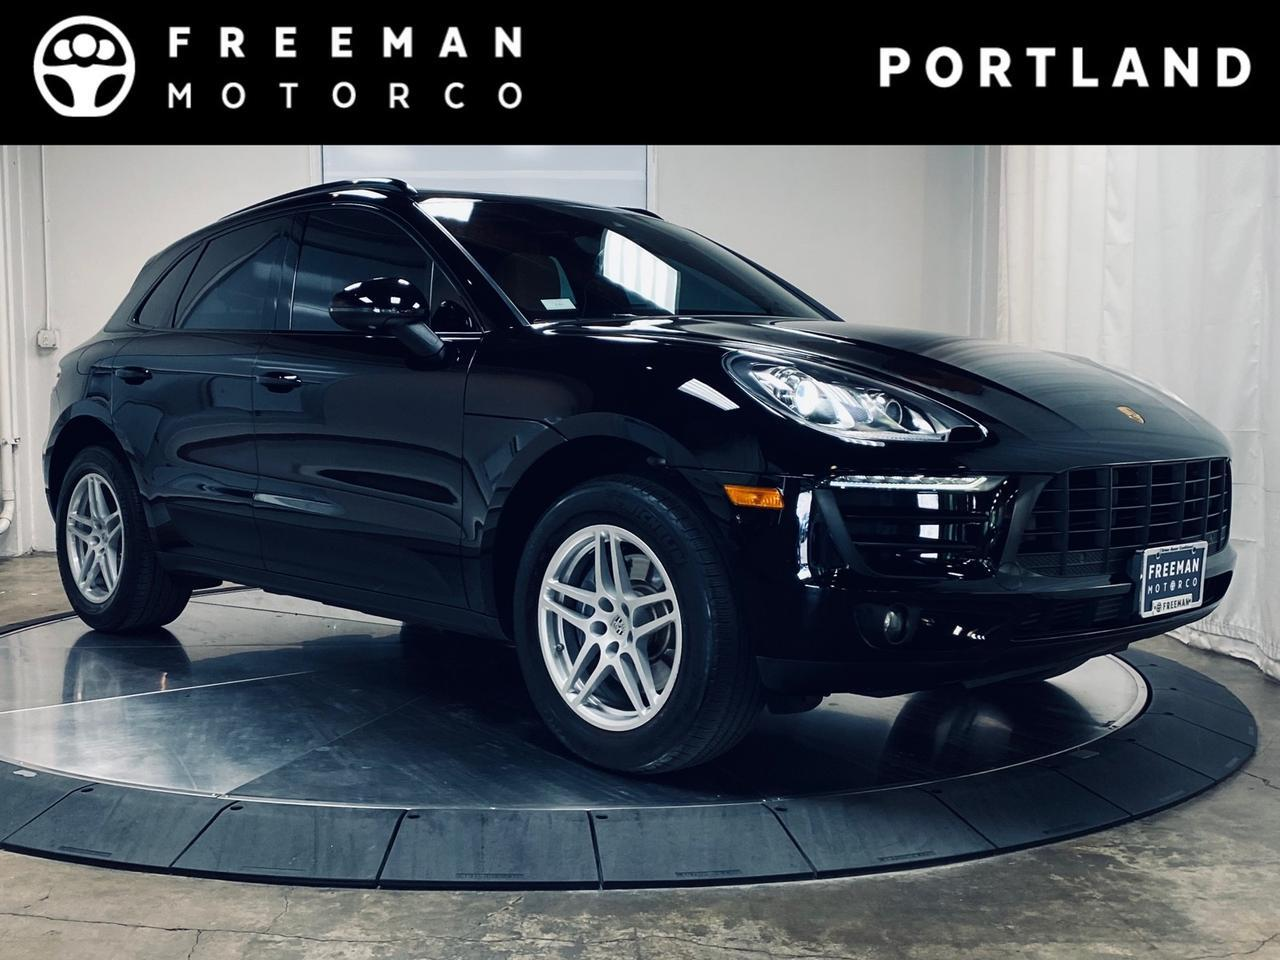 2017 Porsche Macan Pano Roof Heated Seats Navigation Lane Change Assist Portland OR